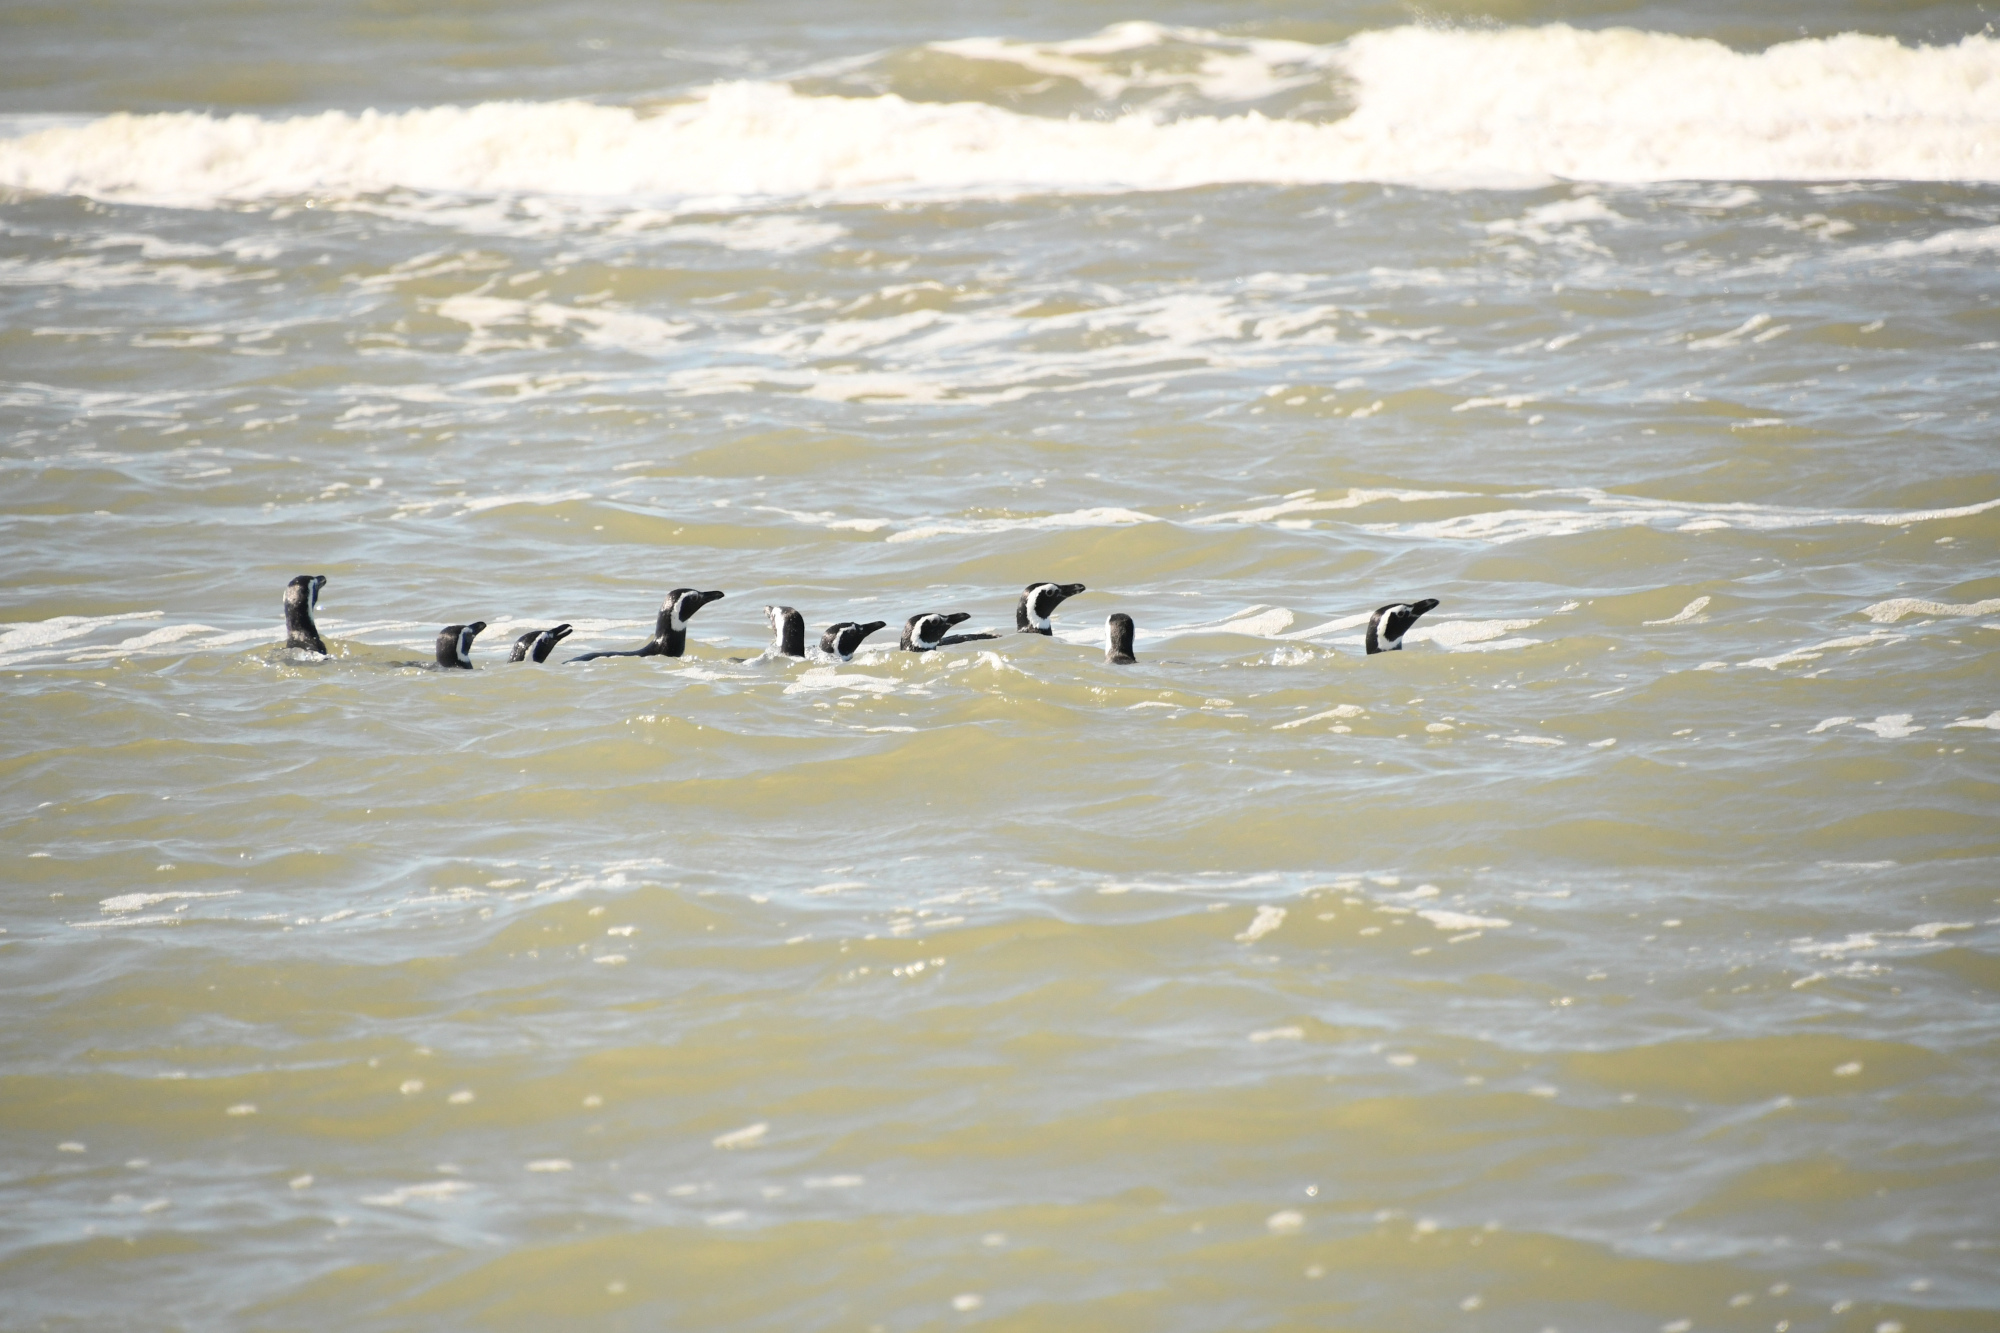 VIDEO: Waddle We Do Now? New Family Of Rescued Penguins Released Back Into The Wild